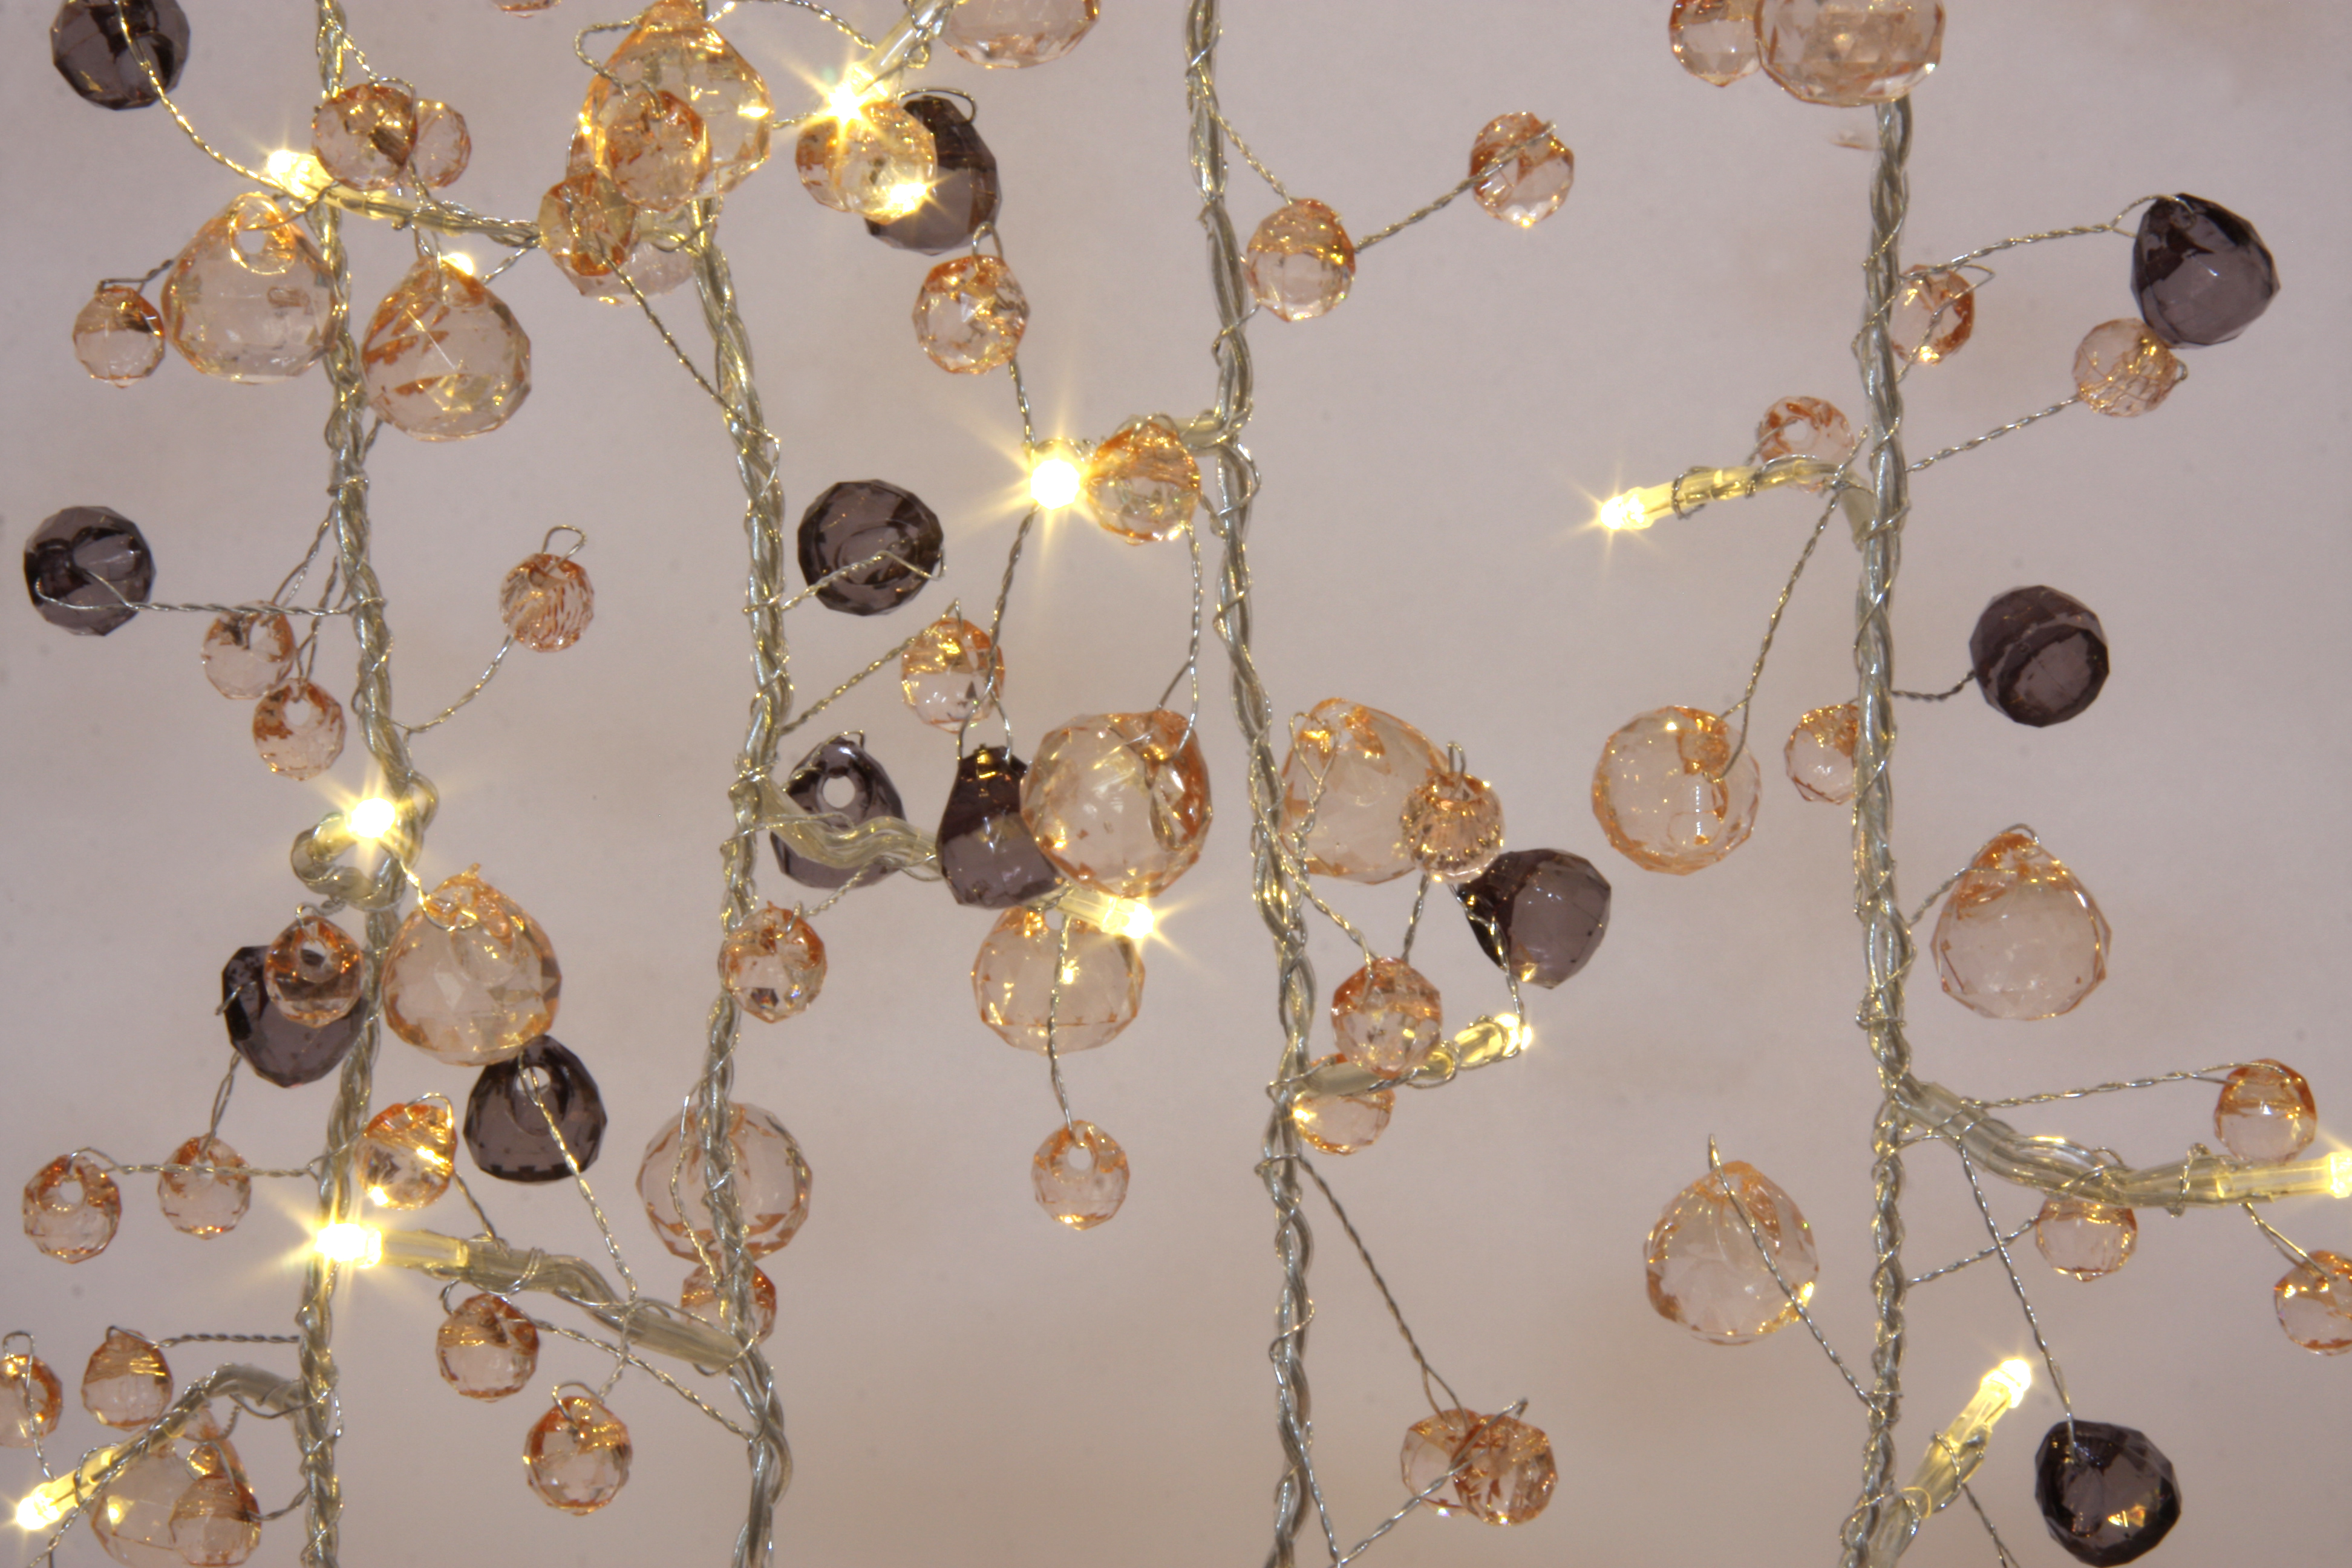 Fairy Lights - Coco Chic - 50 LED String Lights - Mains Powered - ThinkGadgets eBay